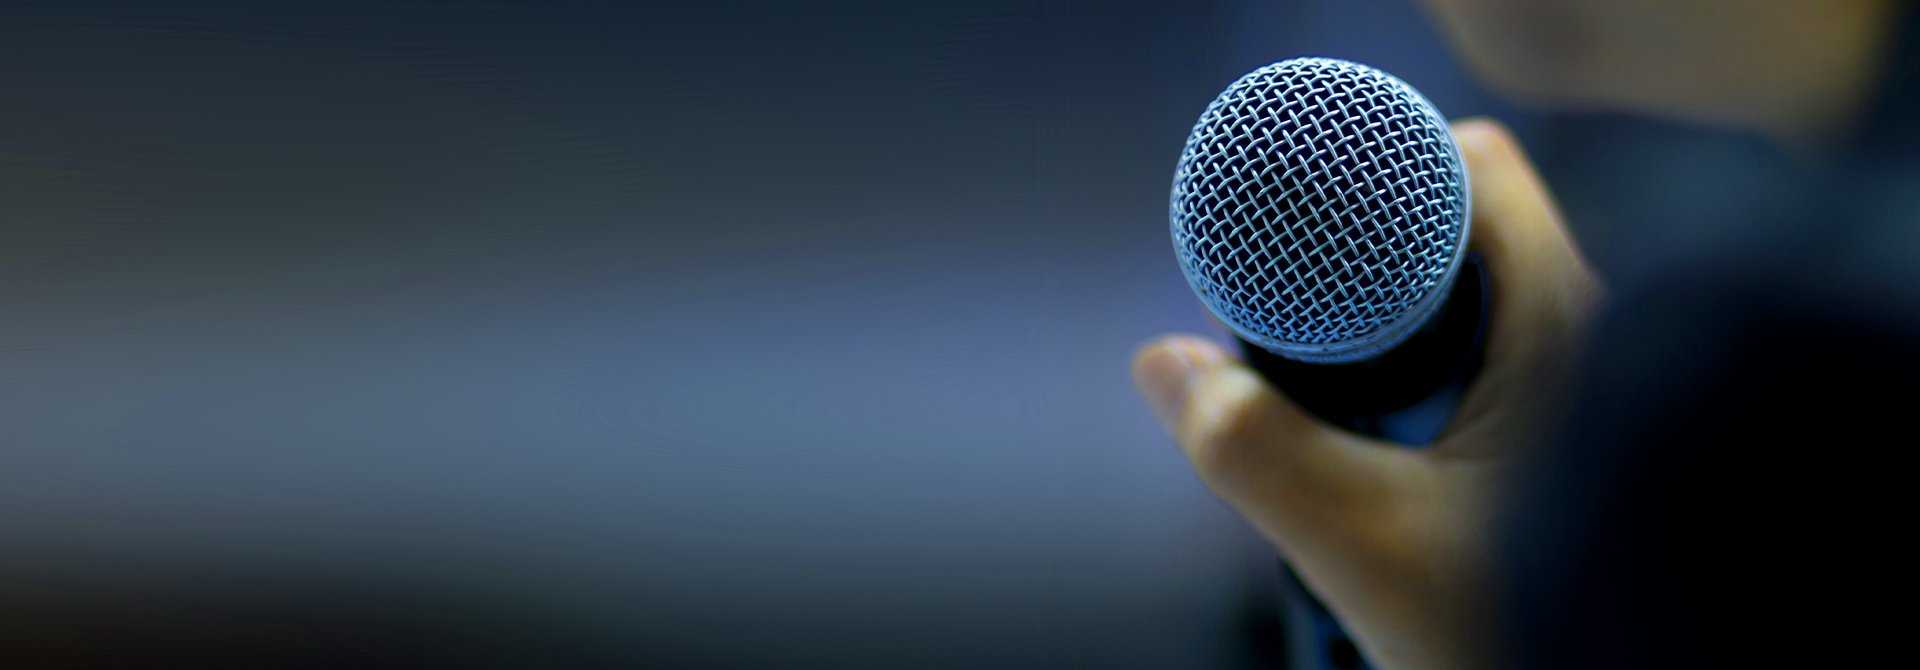 Effective Presentations And Public Speaking